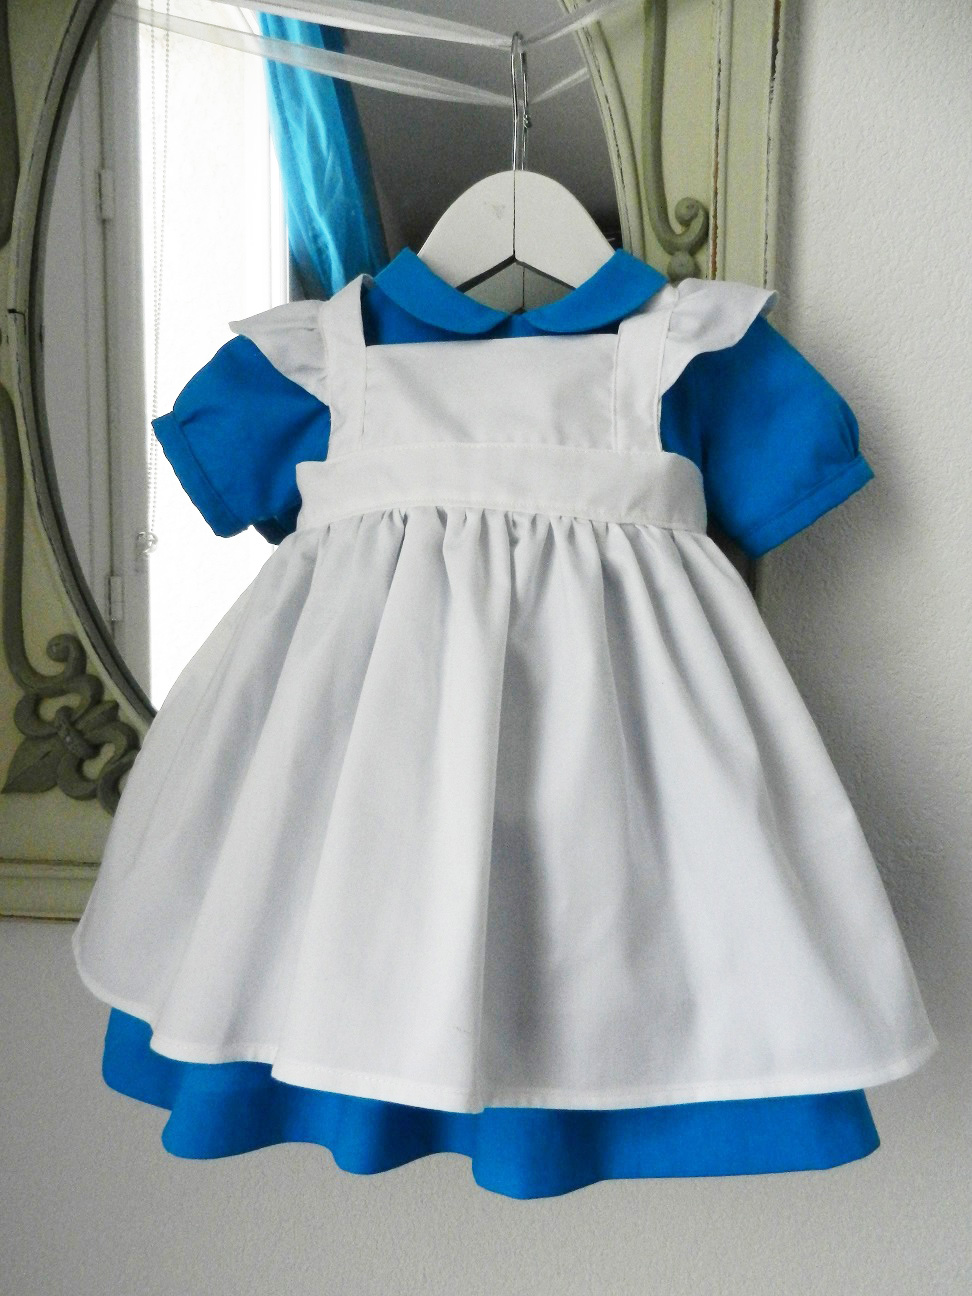 Duchesse or ange 190 robe bleue alice tablier blanc jupon blue dress white apron petticoat f modifie 1